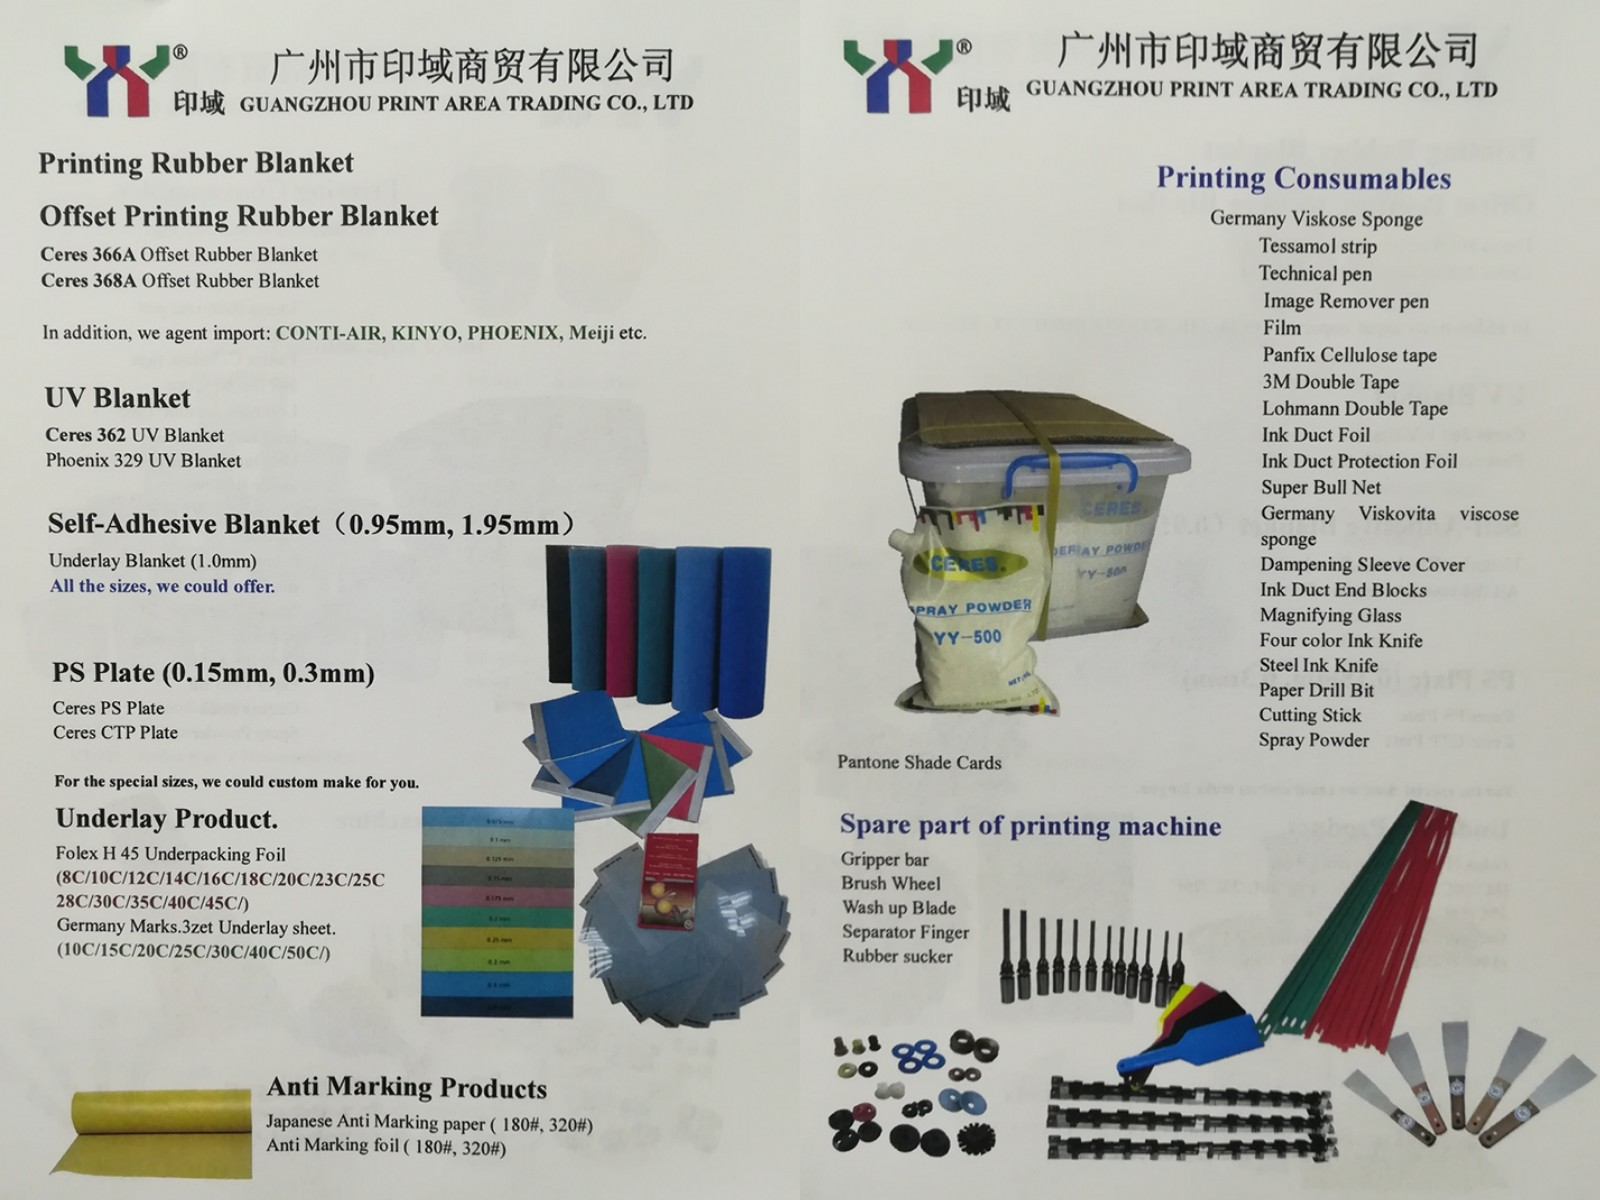 High Gloss Pantone Spot Color Sheet Fed Offset Printing Ink Diagram Press Company Information